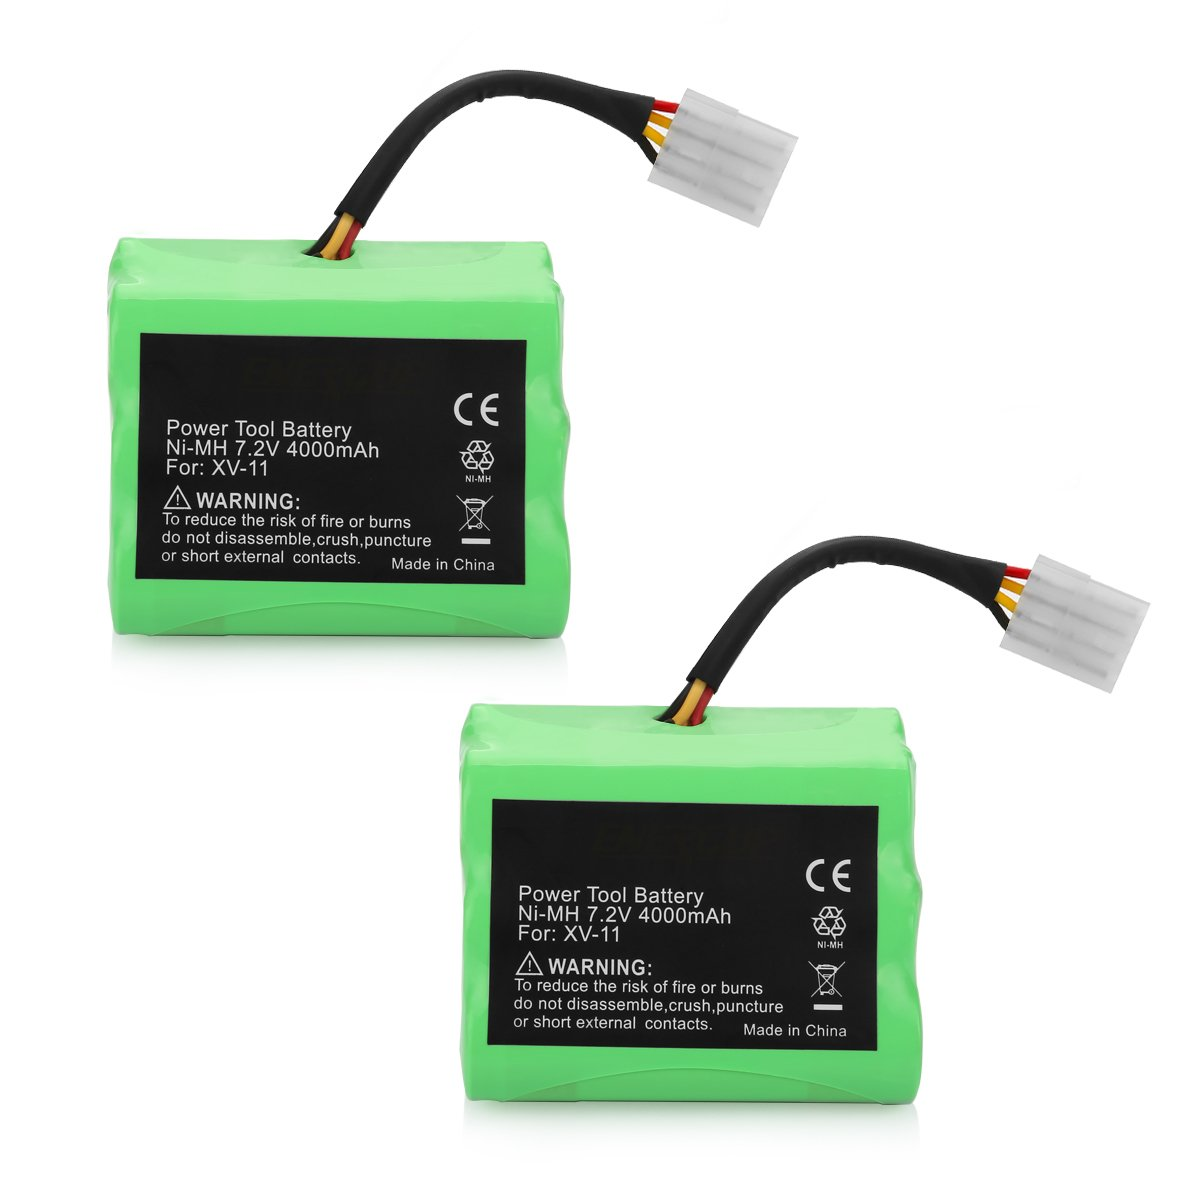 ANTRobut 2 Pack 4000mAh 7.2V Neato Battery Replace for Neato XV-11 XV-12 XV-14 XV-15 XV-21 XV-25, XV Essential, XV Signature Pro Robotic Vacuum Cleaners Replacement Neato Battery 945-0005 205-0001